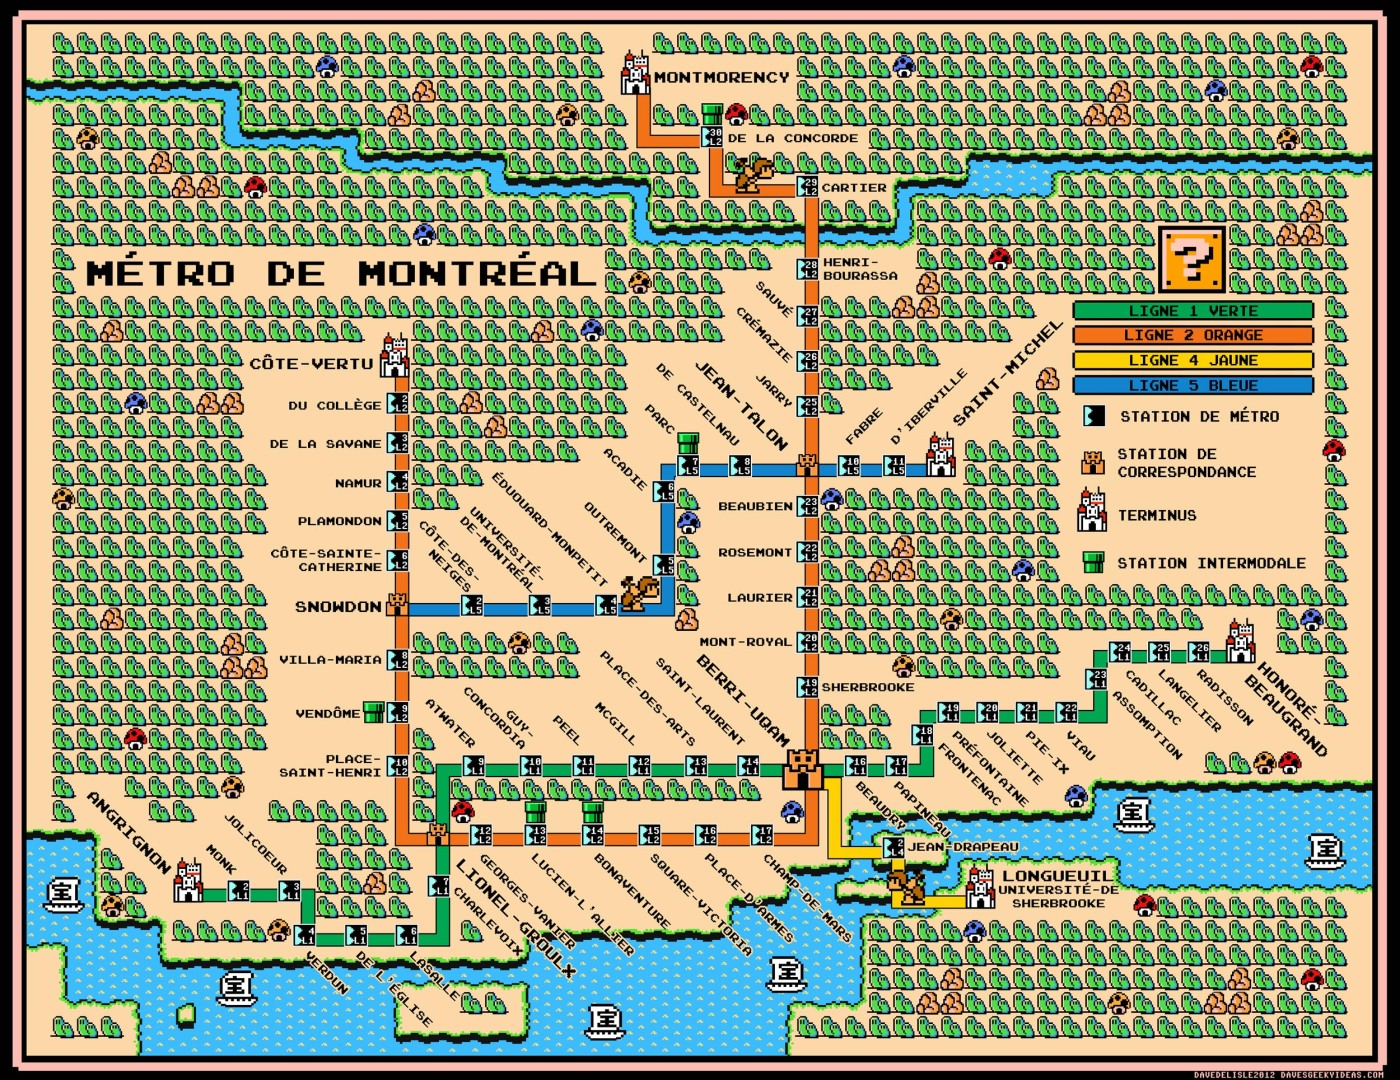 Montreal Subway Map.Montreal Metro Map Super Mario 3 Style Dave S Geeky Ideas